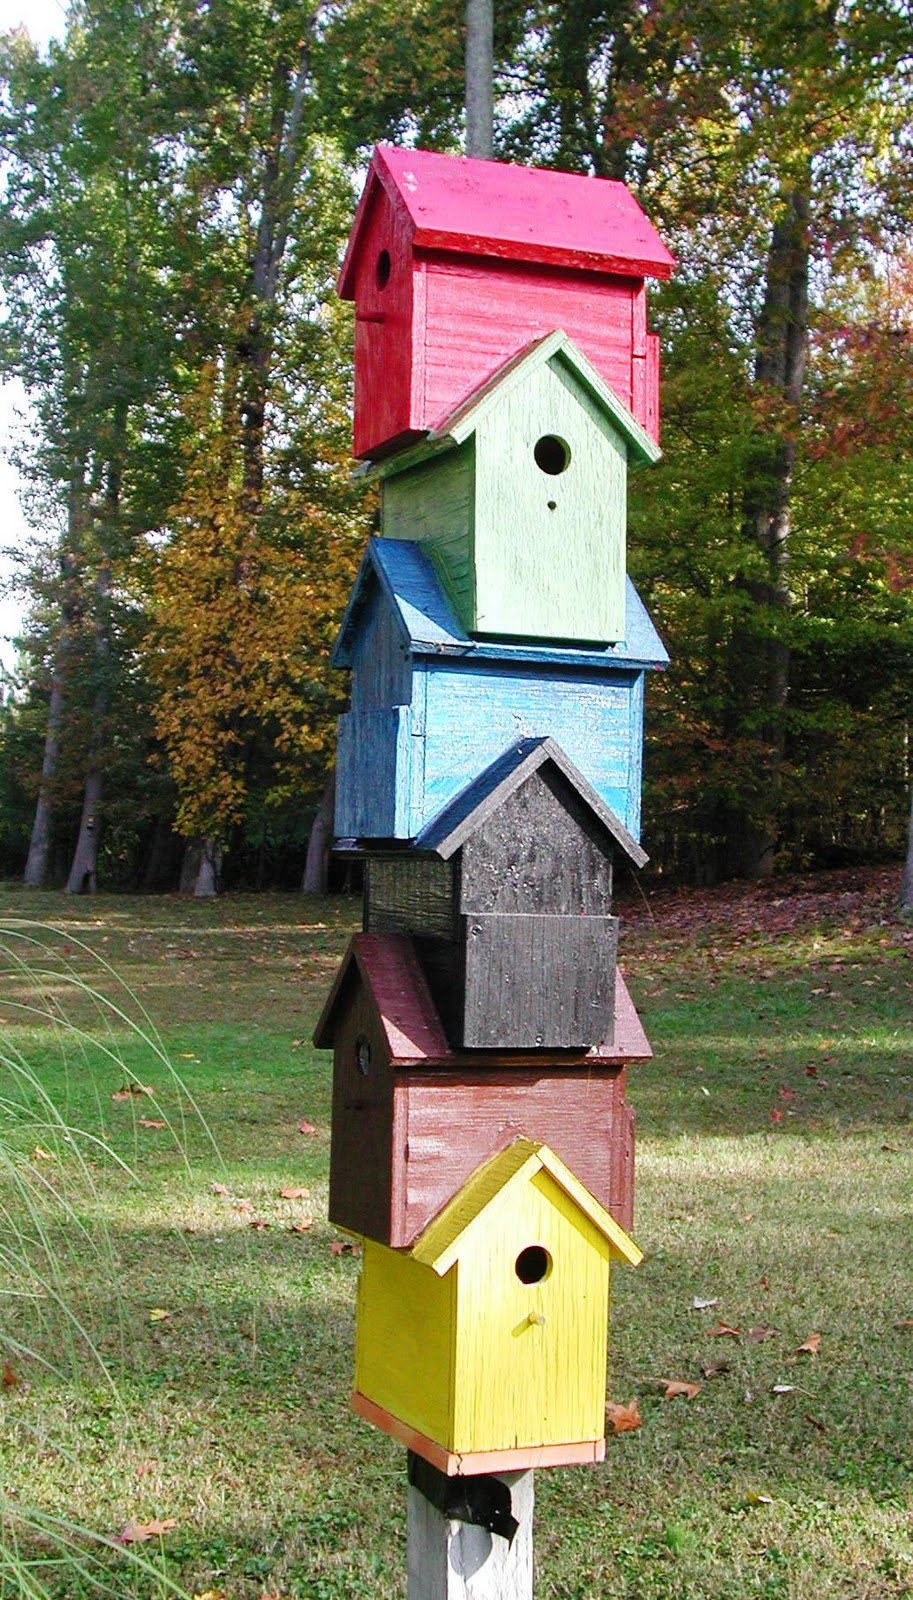 retired gentleman near where I used to work loves to build birdhouses ...